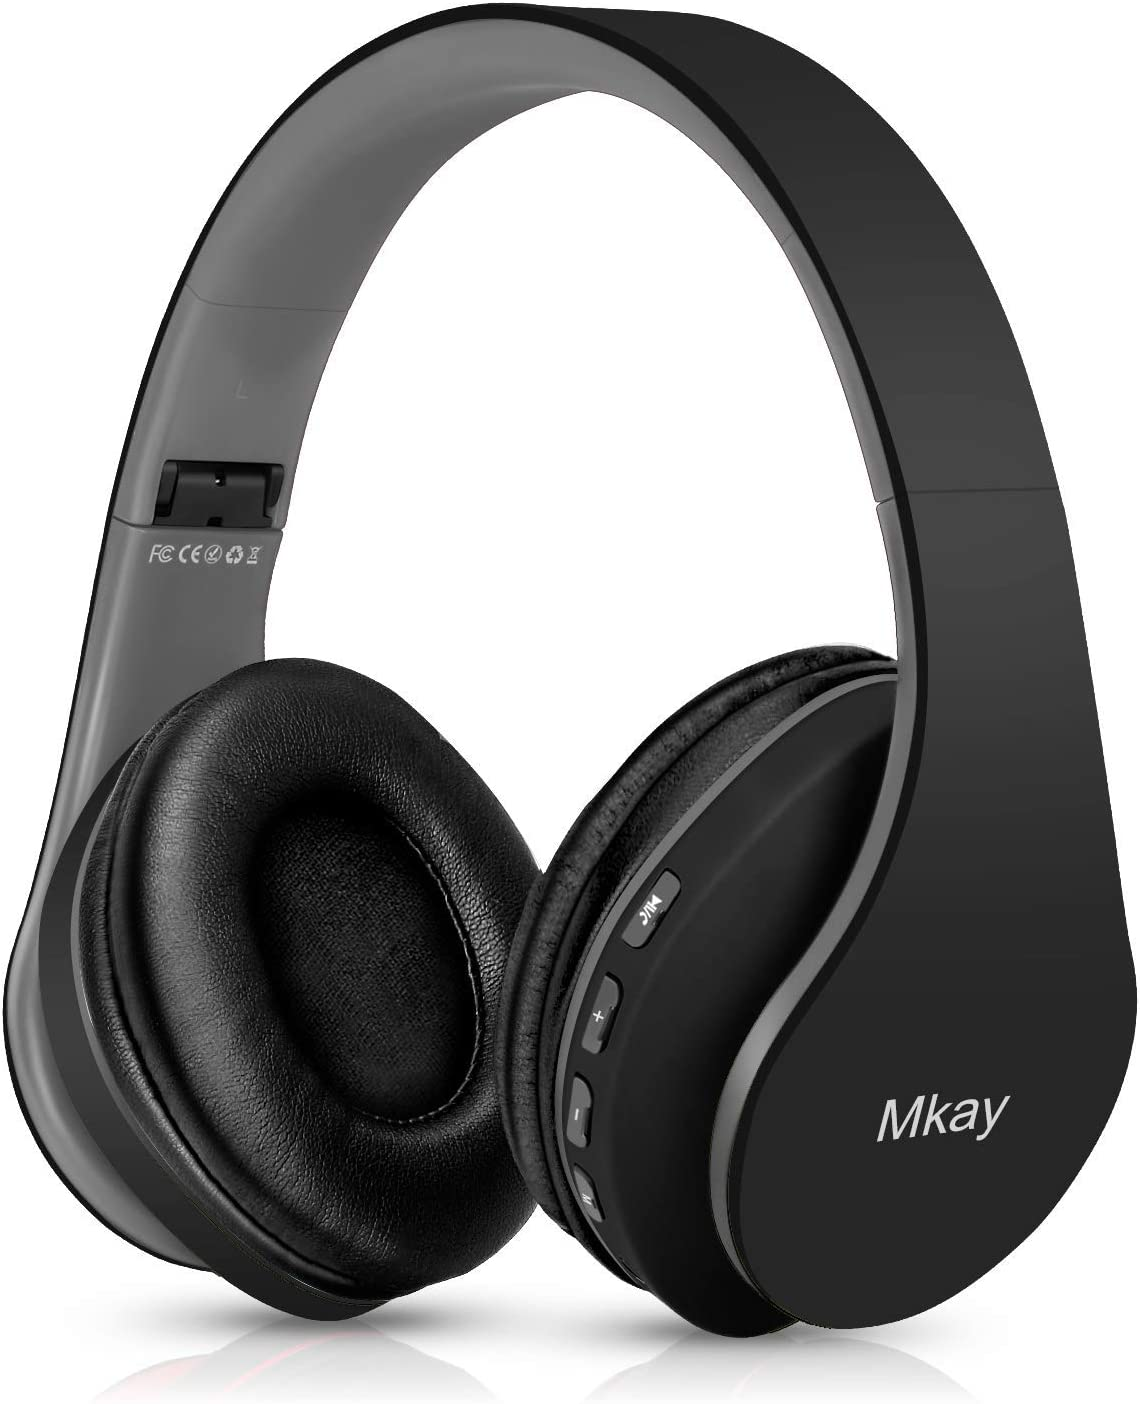 Bluetooth Headphones Wireless,MKay Over Ear Headset V5.0 with Microphone, Foldable & Lightweight, Support Tf Card MP3 Mode and Fm Radio for Cellphones Laptop TV(Black-Gray)